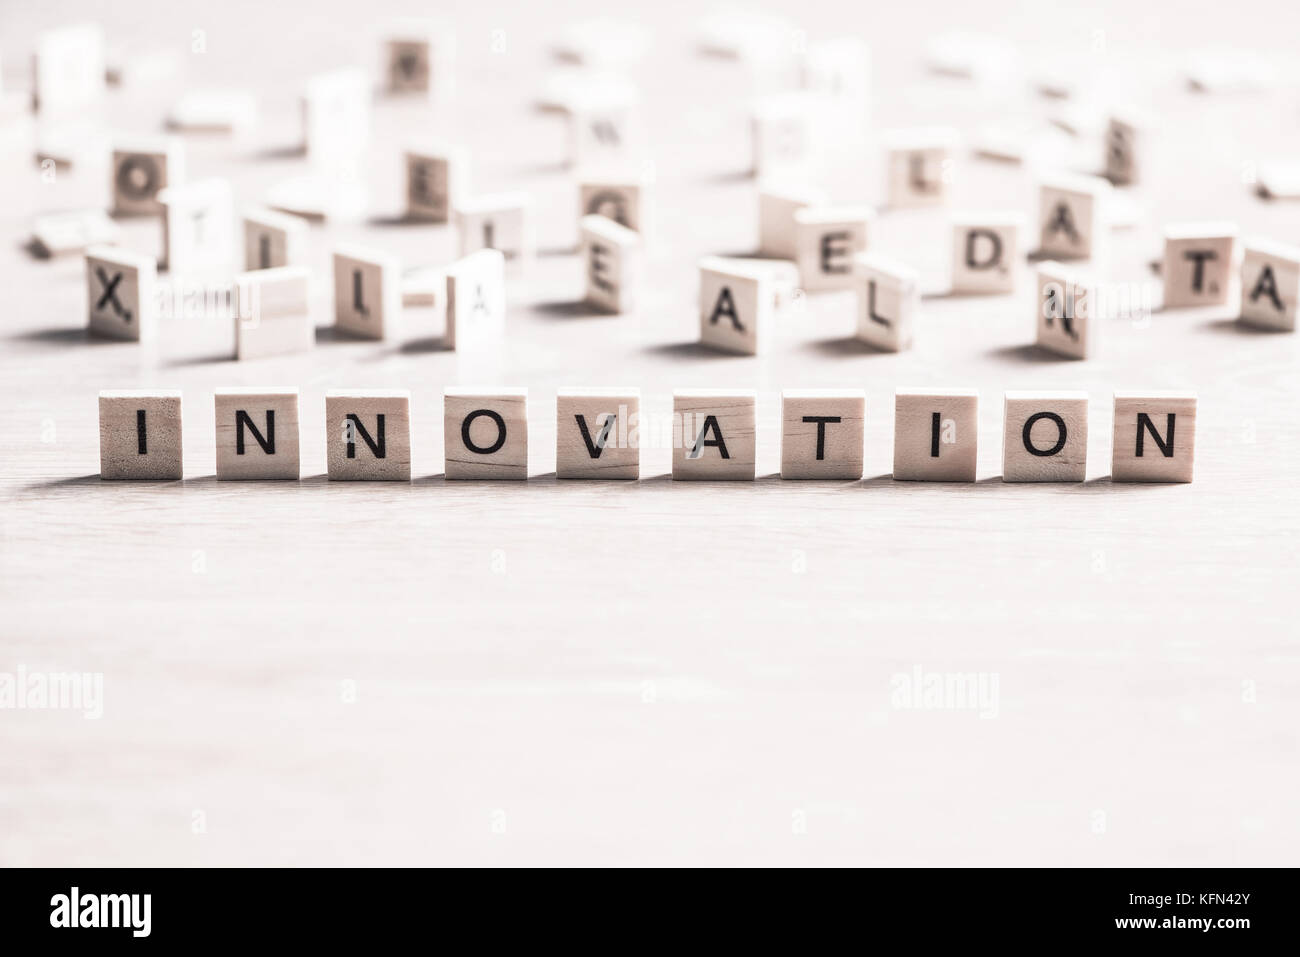 L'innovation mot scrabble Photo Stock